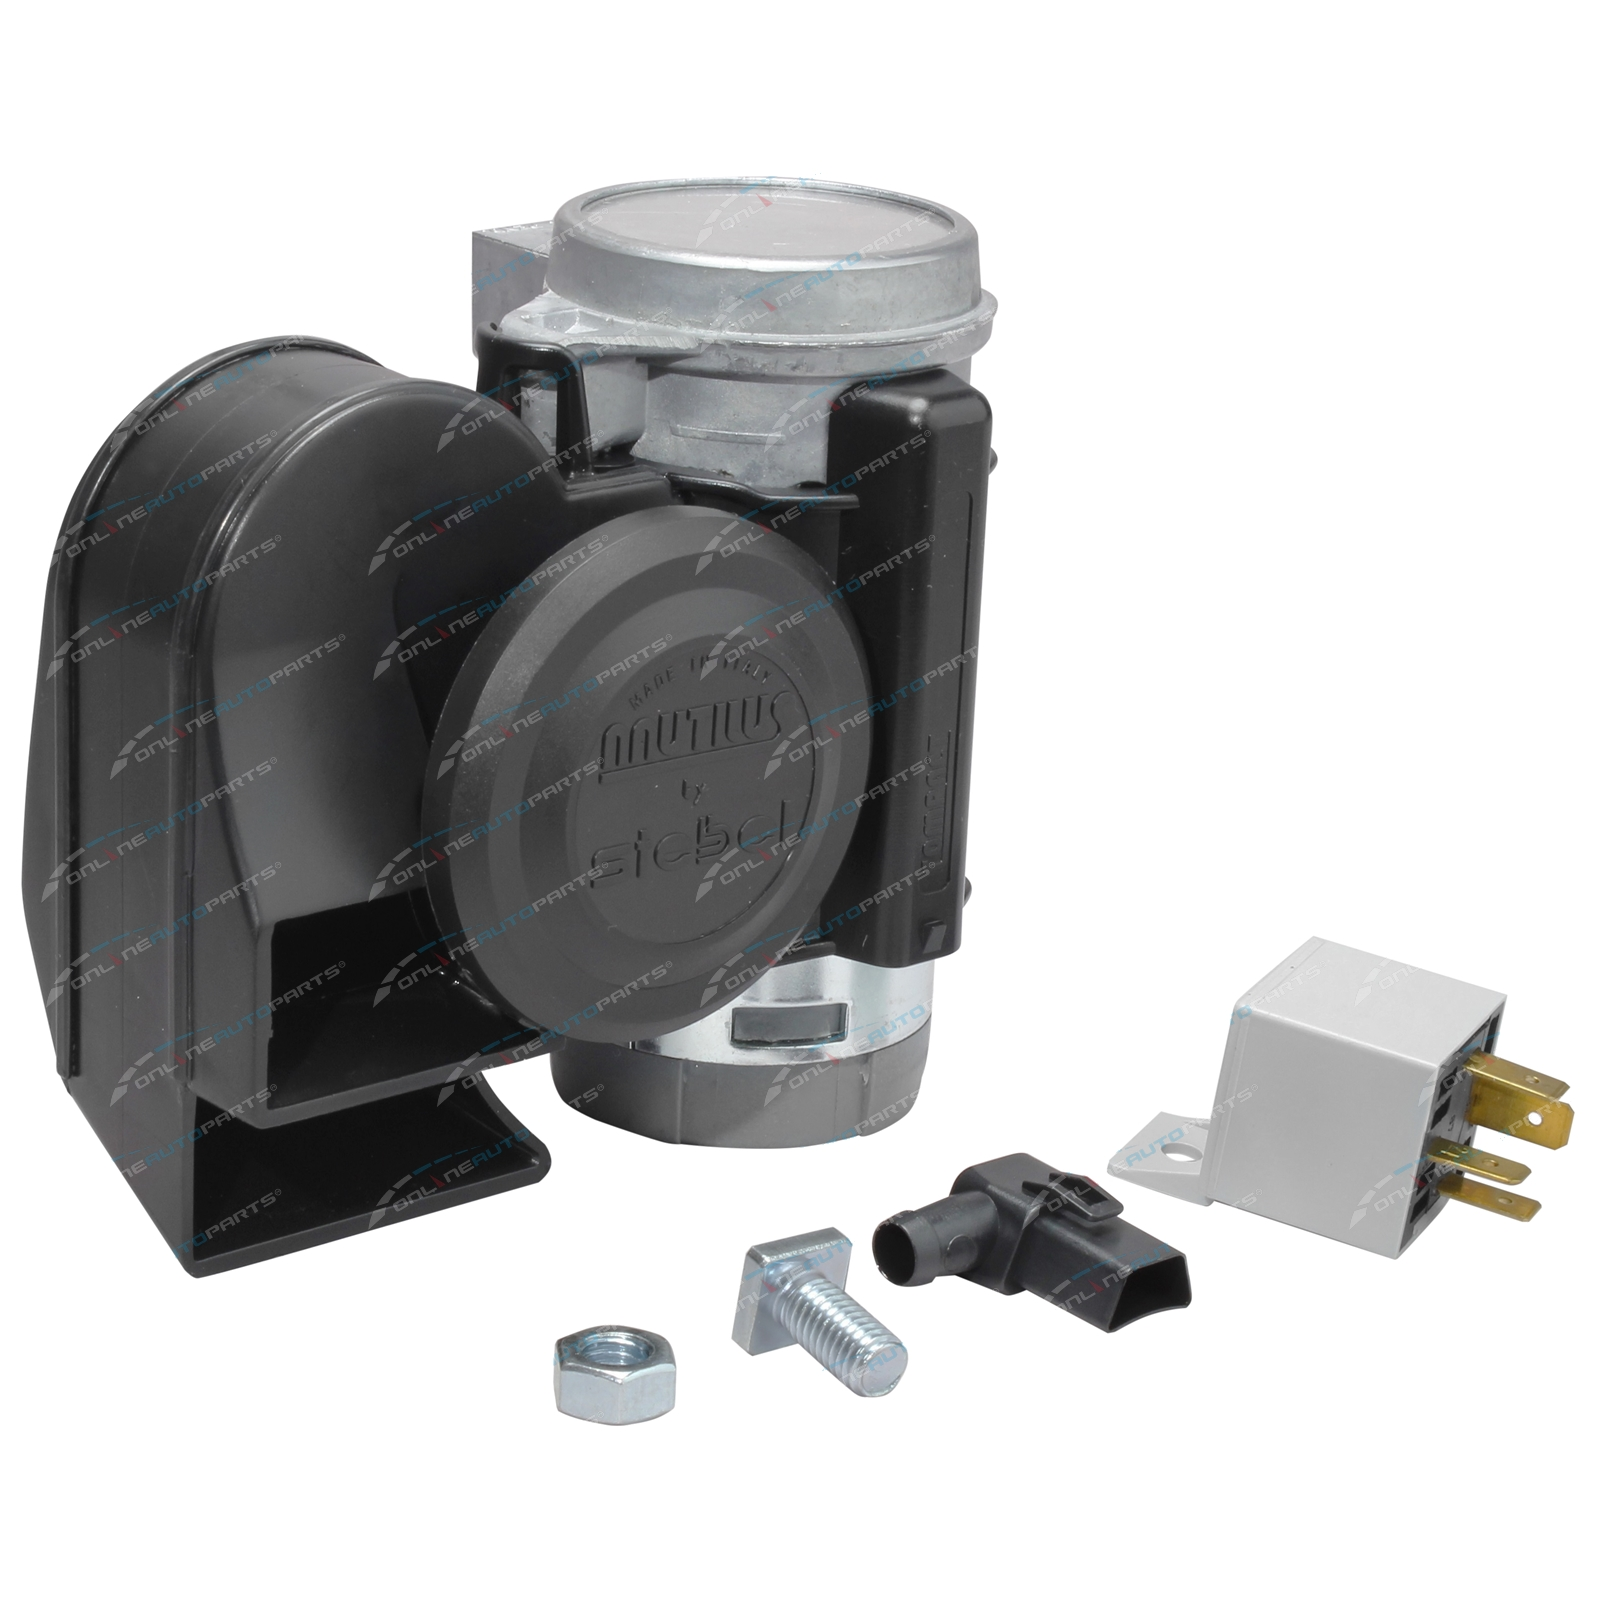 hight resolution of 24 volt stebel nautilus compact truck car air horn 139db loud black bus electric click to enlarge